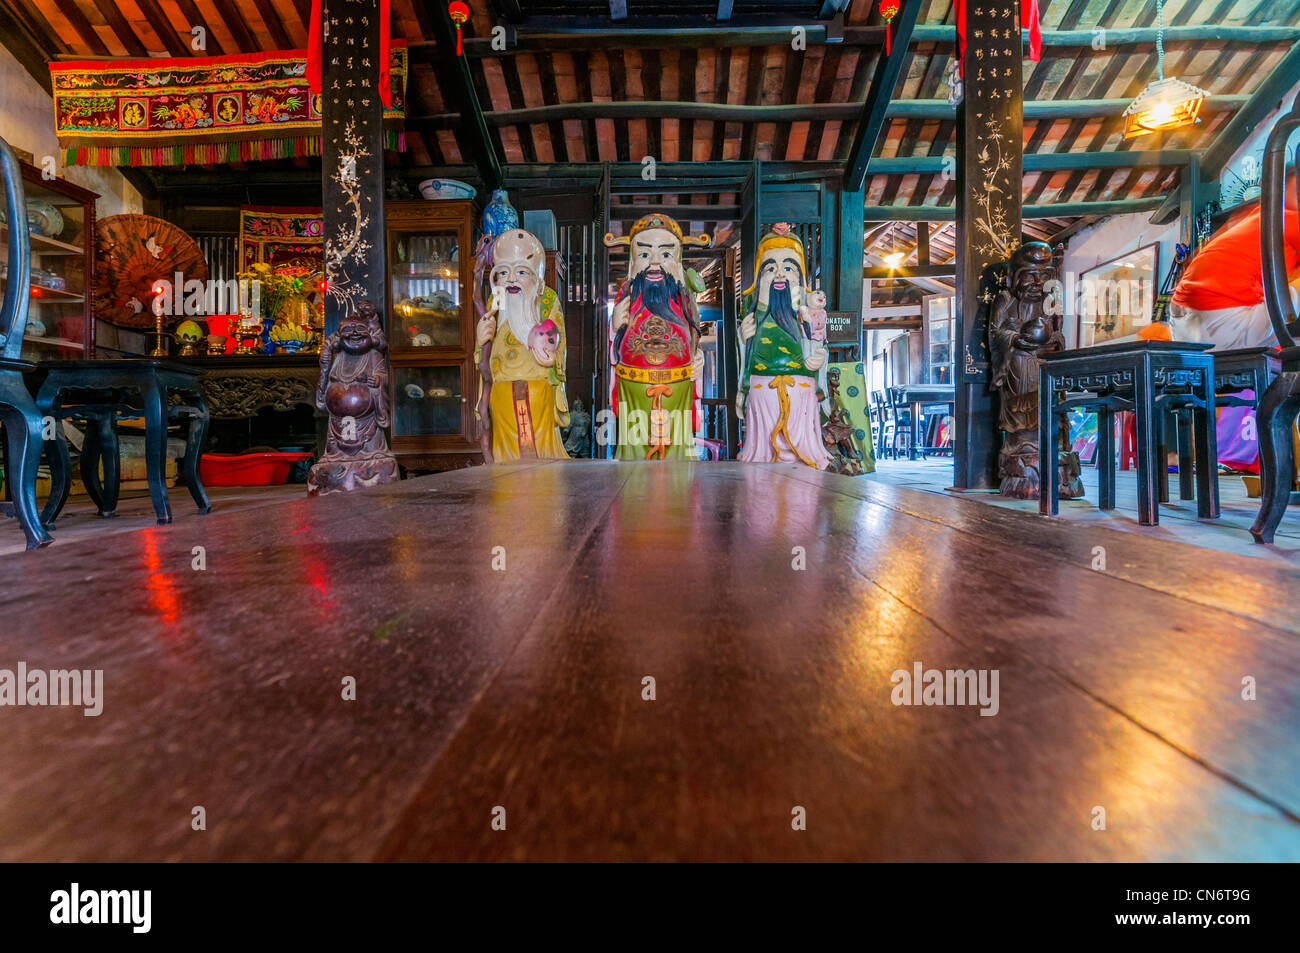 Three statues representing Happiness, prosperity, long life. Old house of Phung Hung, Hoi An's Old Town. Vietnam, - Stock Image